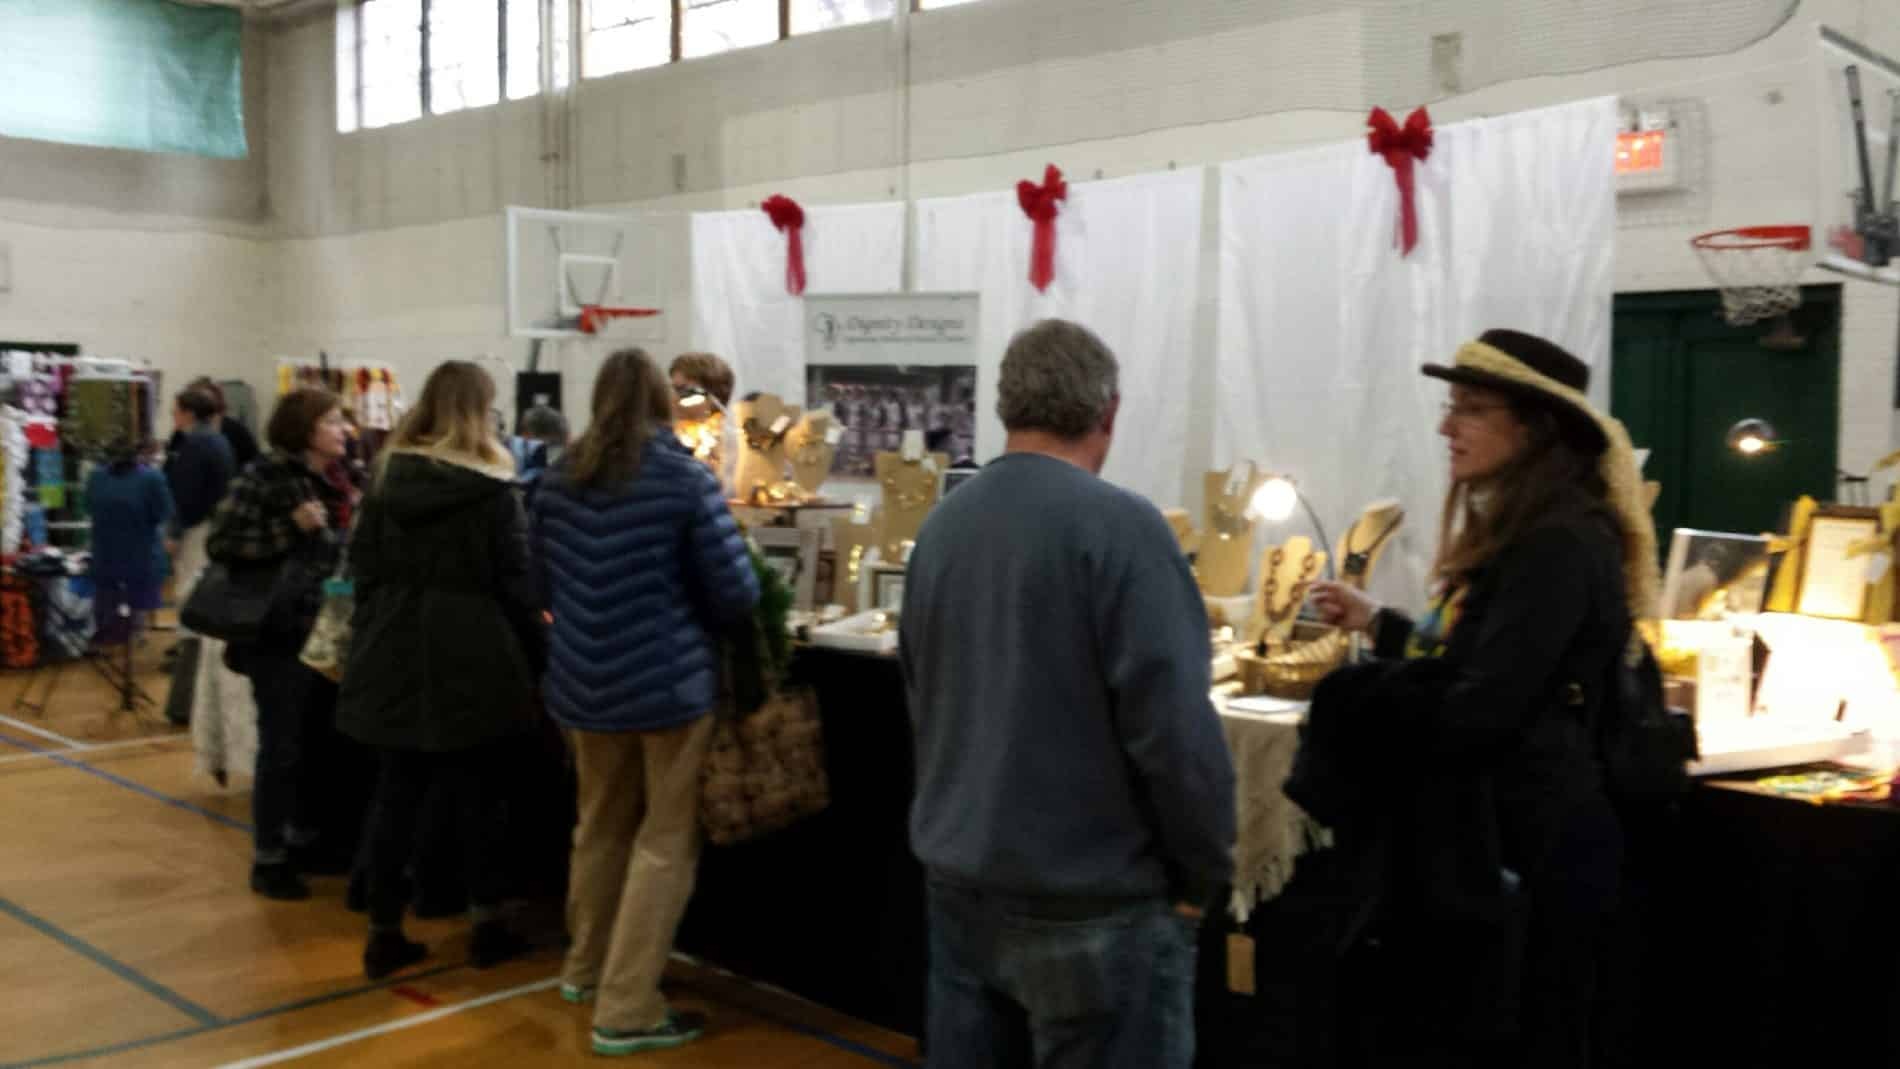 Several people walk through a craft fair looking at booths of peoples' wares in a gymnasium